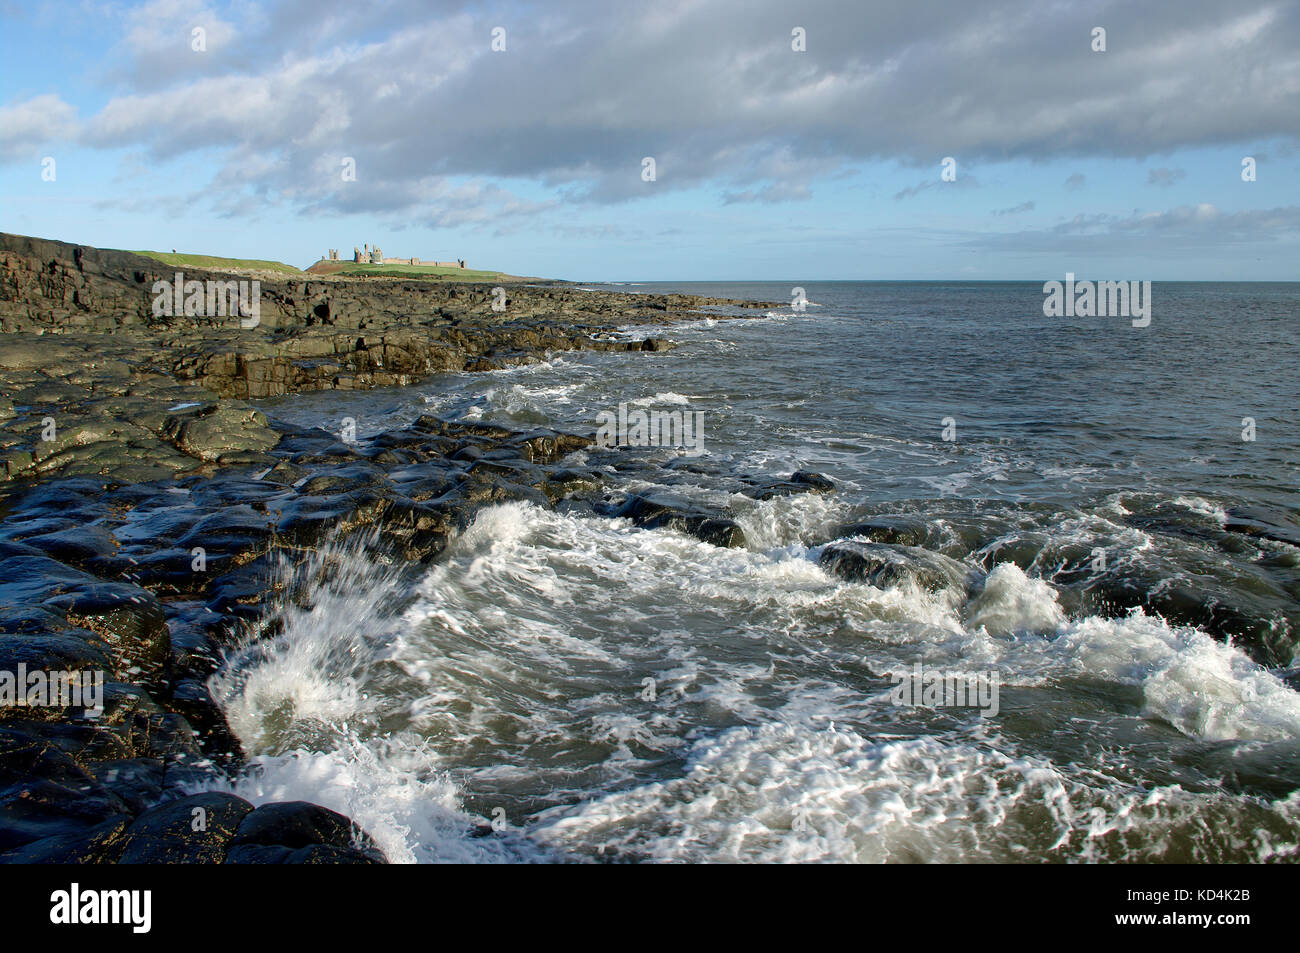 Dunstanburgh Castle and coast - Stock Image